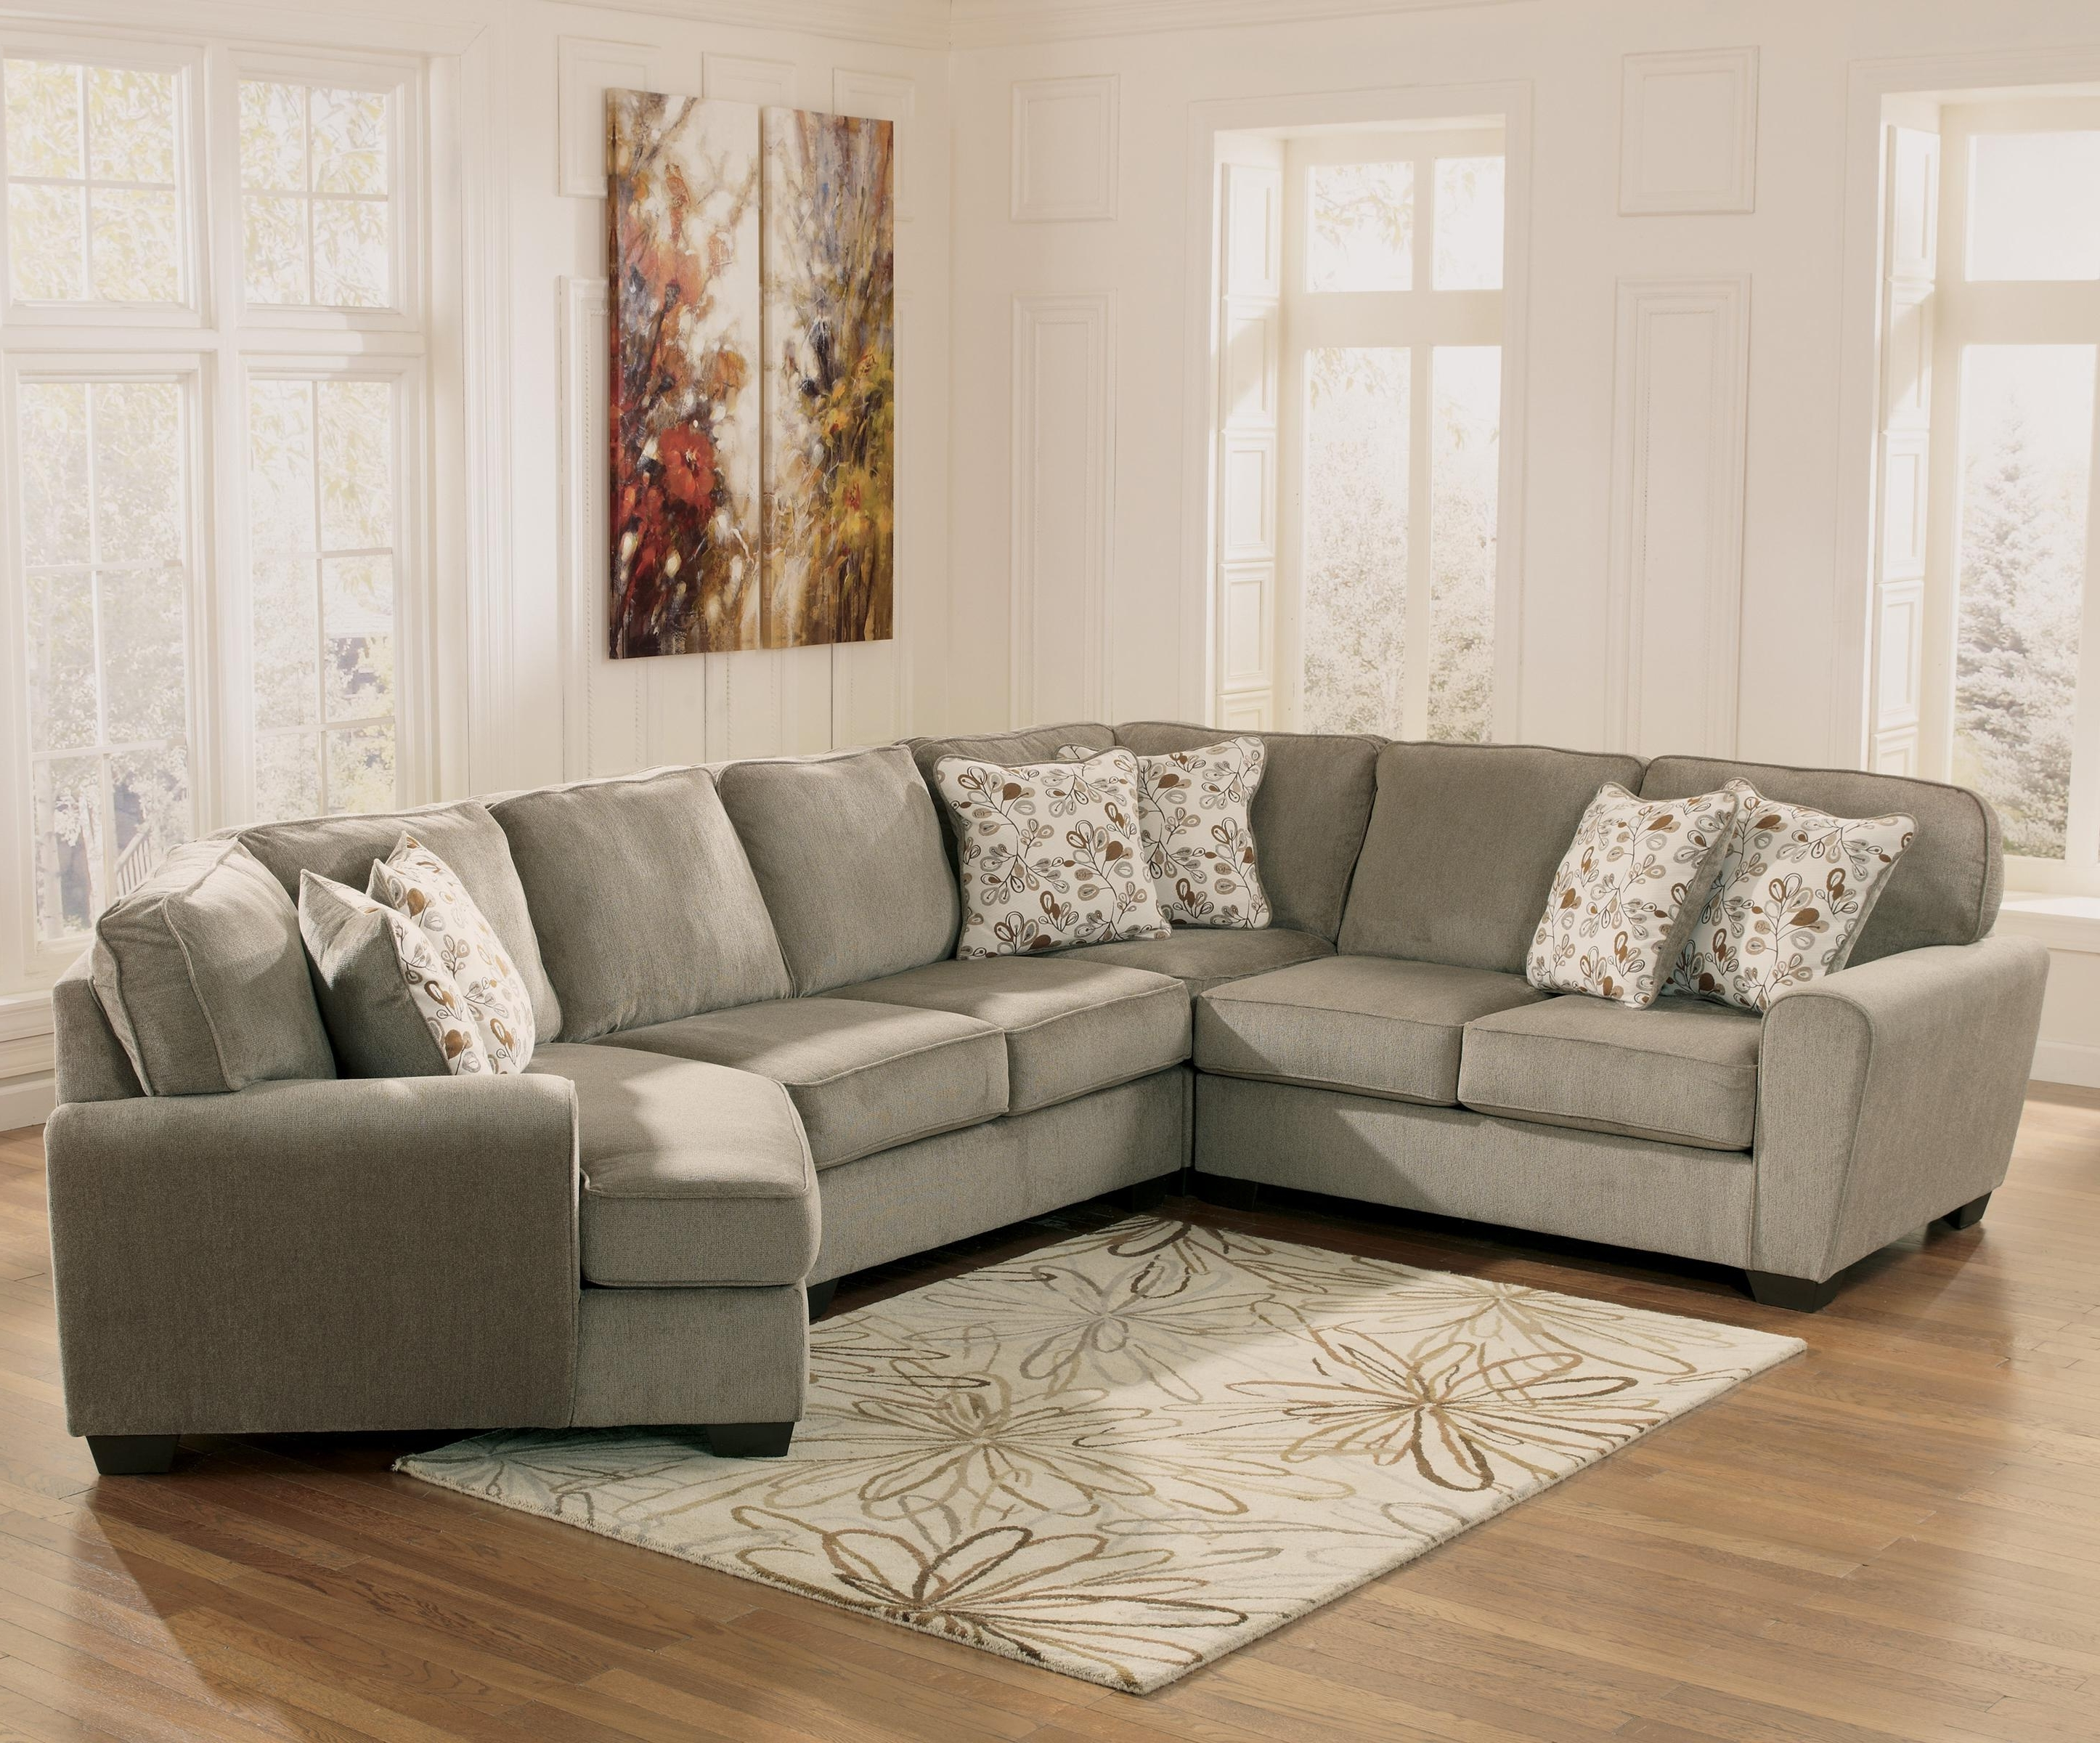 Sofa Within Trendy Cuddler Sectional Sofas (View 12 of 15)